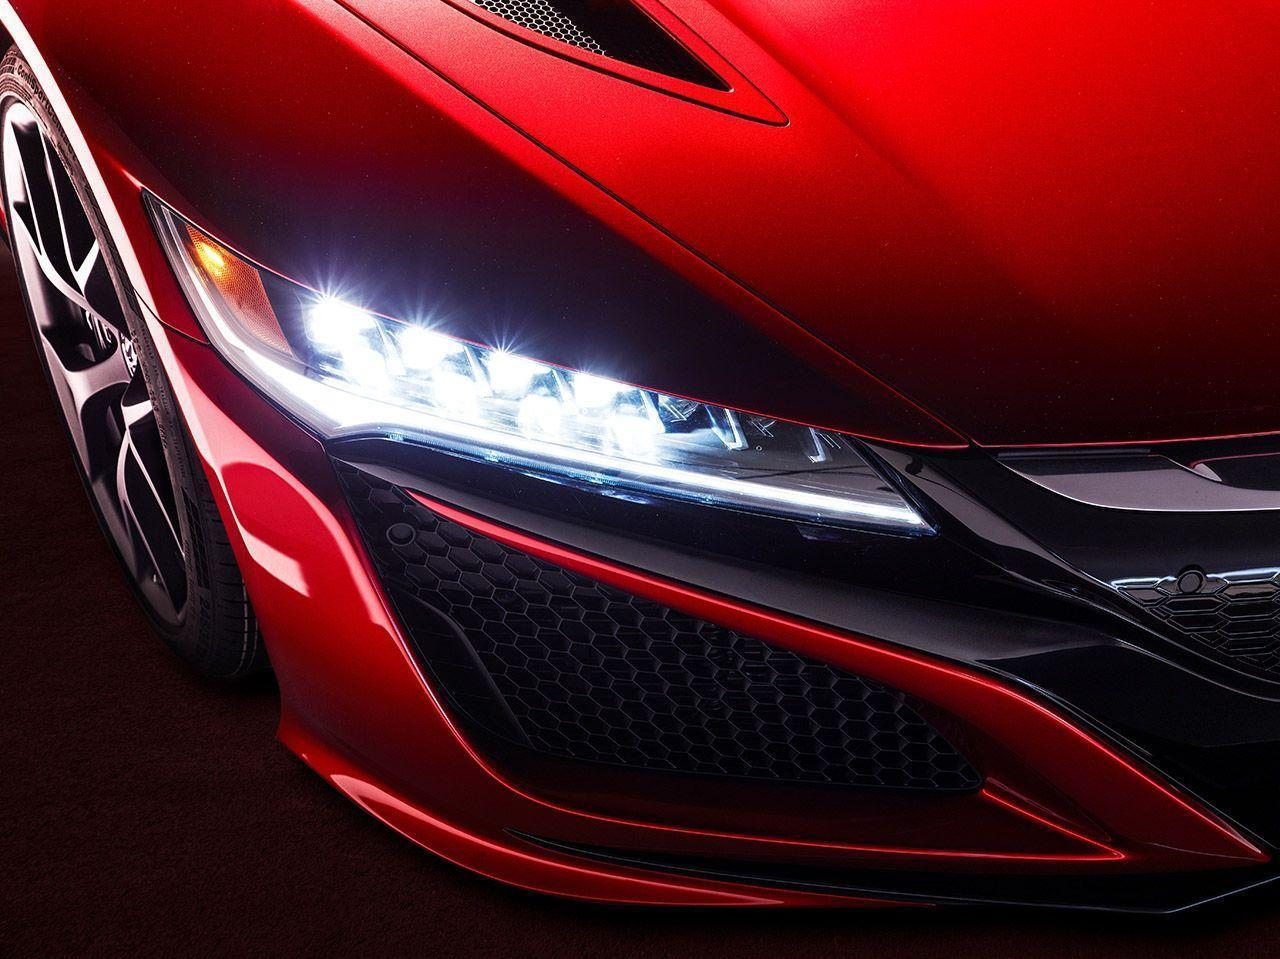 Acura NSX 2017 Wallpapers car wallpapers hd